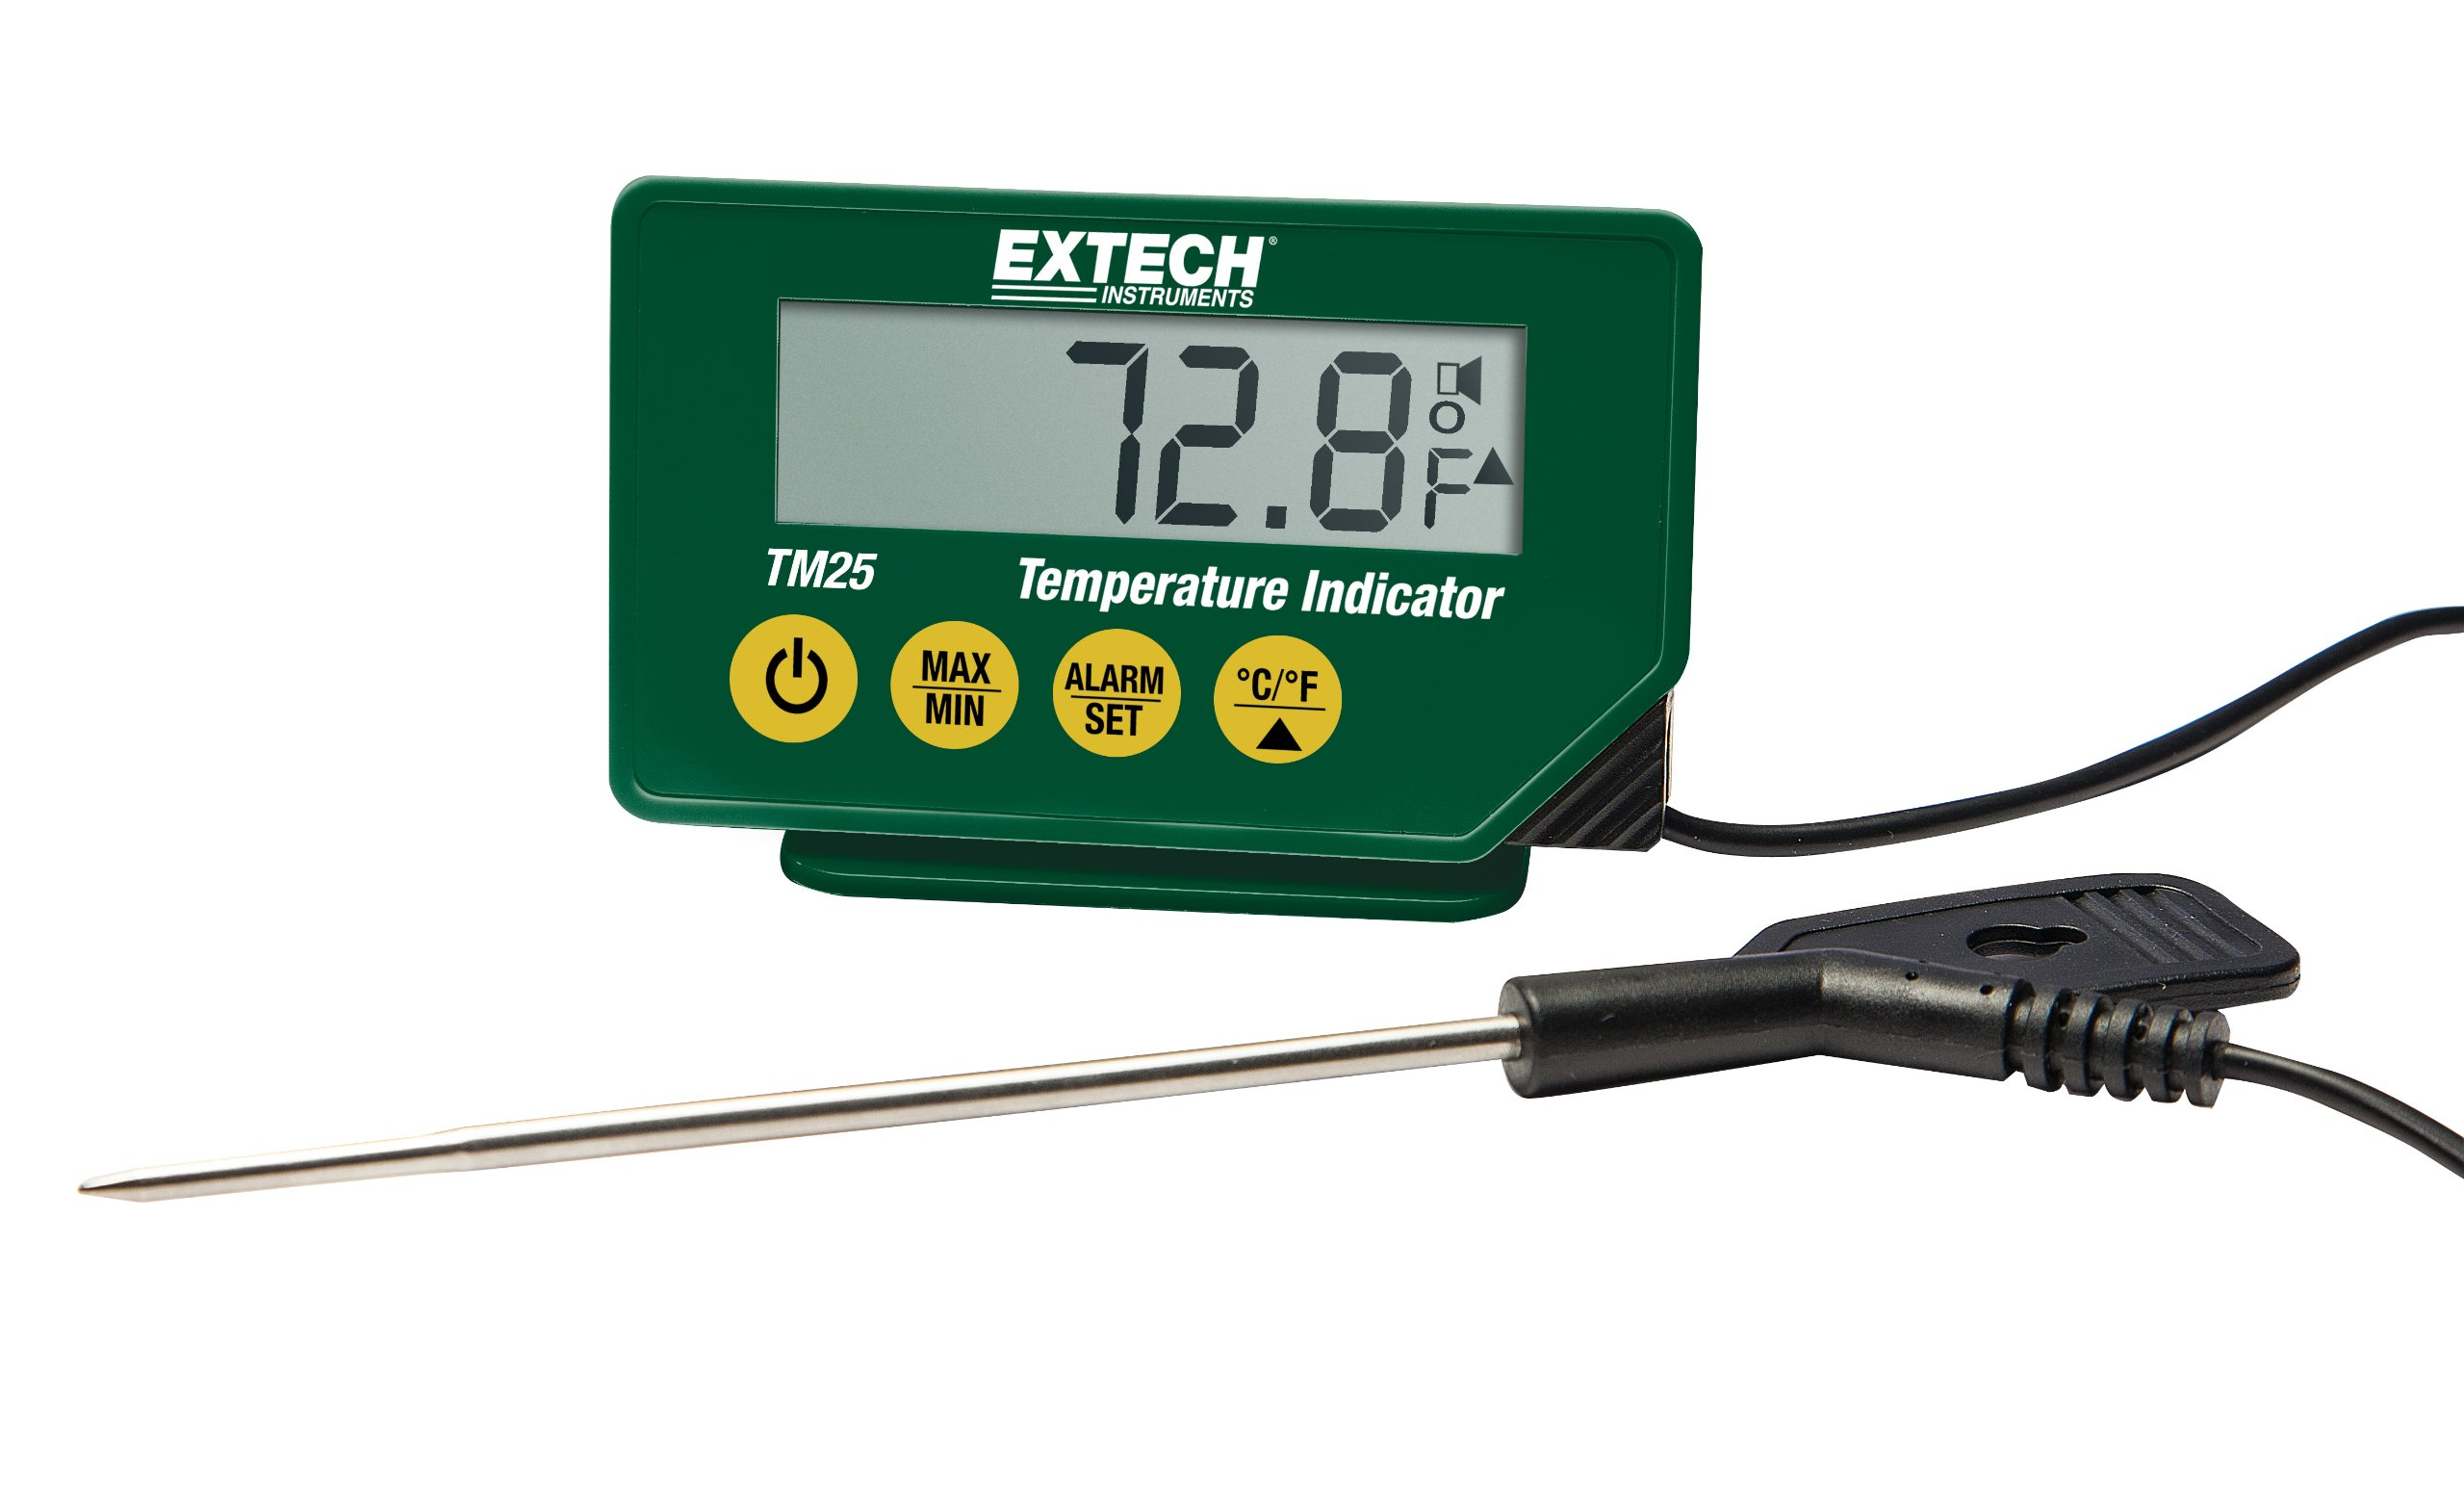 Extech TM25 Waterproof Temperature Indicator